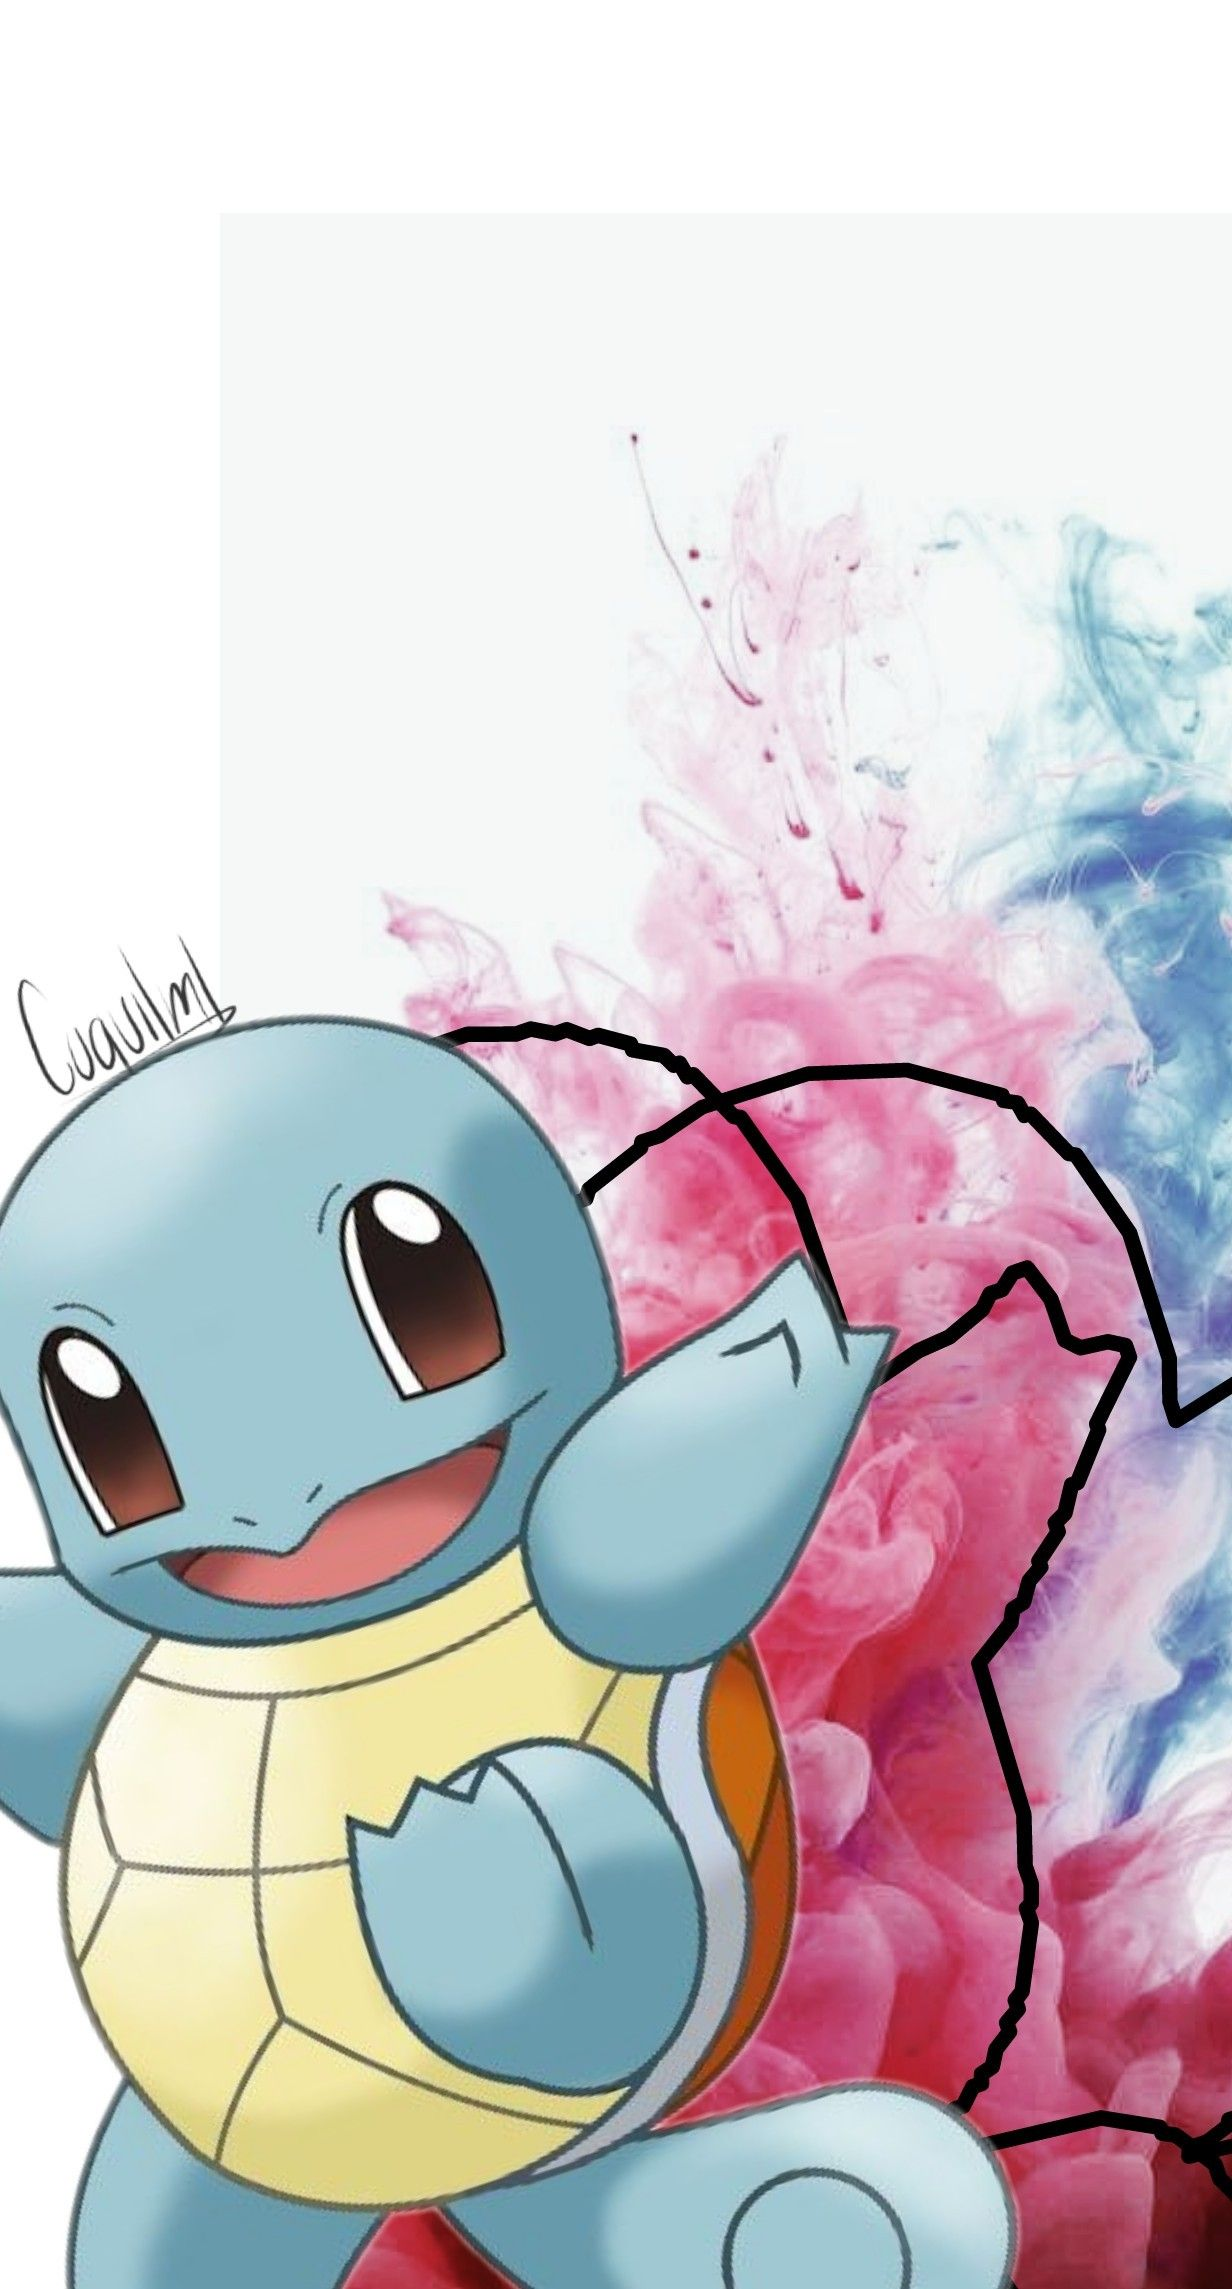 Squirtle Jackson Got7 Fondo Got7 Wallpaper Ipad Wallpaper Iphone Wallpaper Pokemon